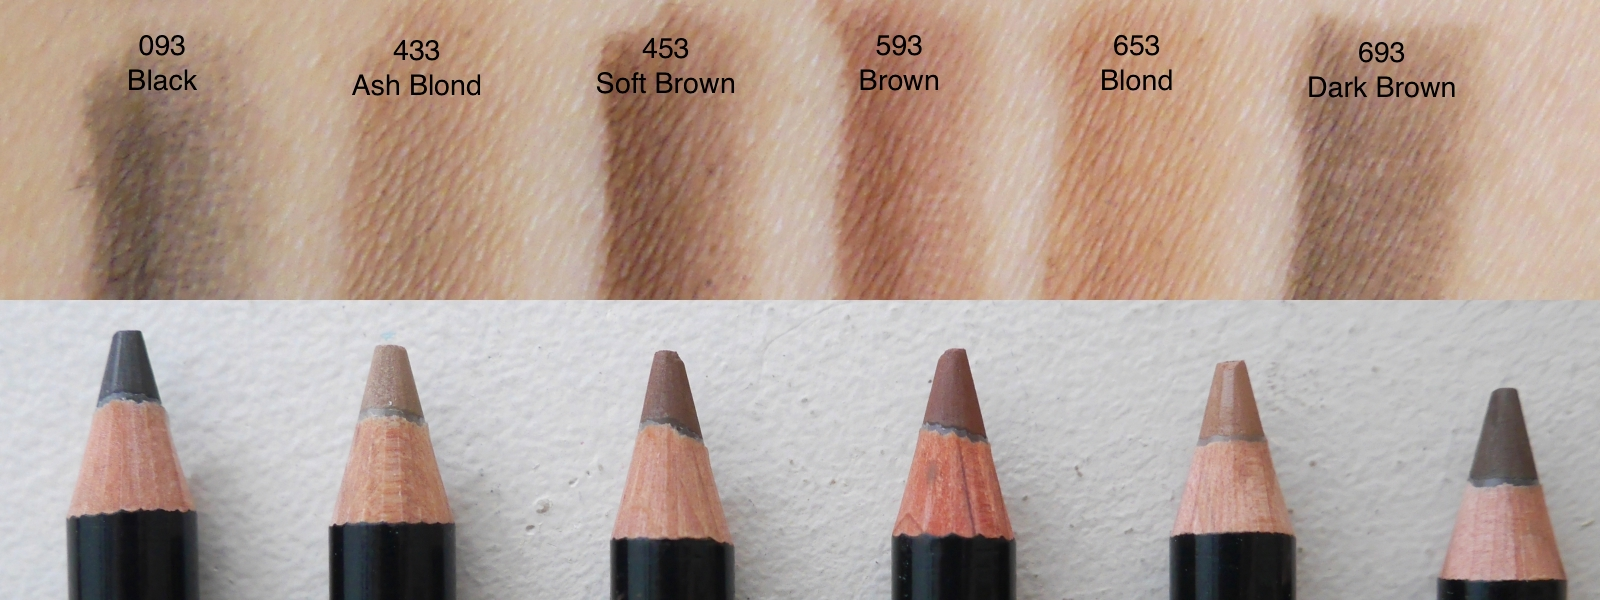 Eyebrow Pencil Powder - The Best Pencil Of 2018